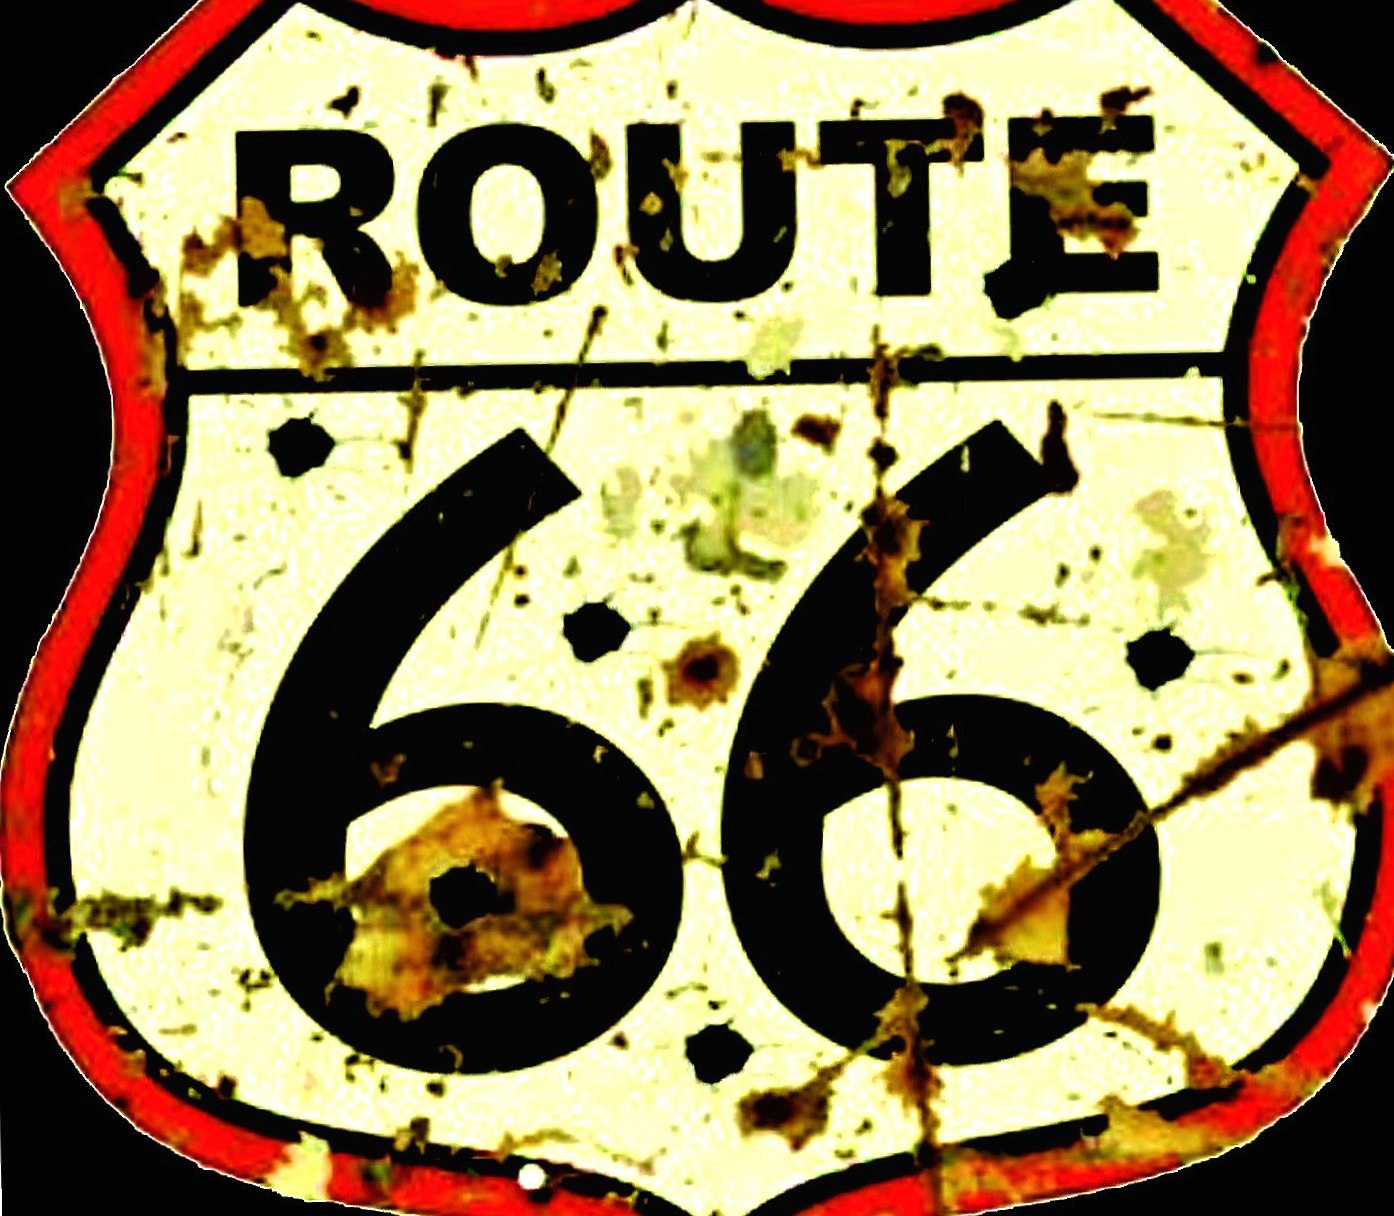 Route 66 Wallpaper Hd Download